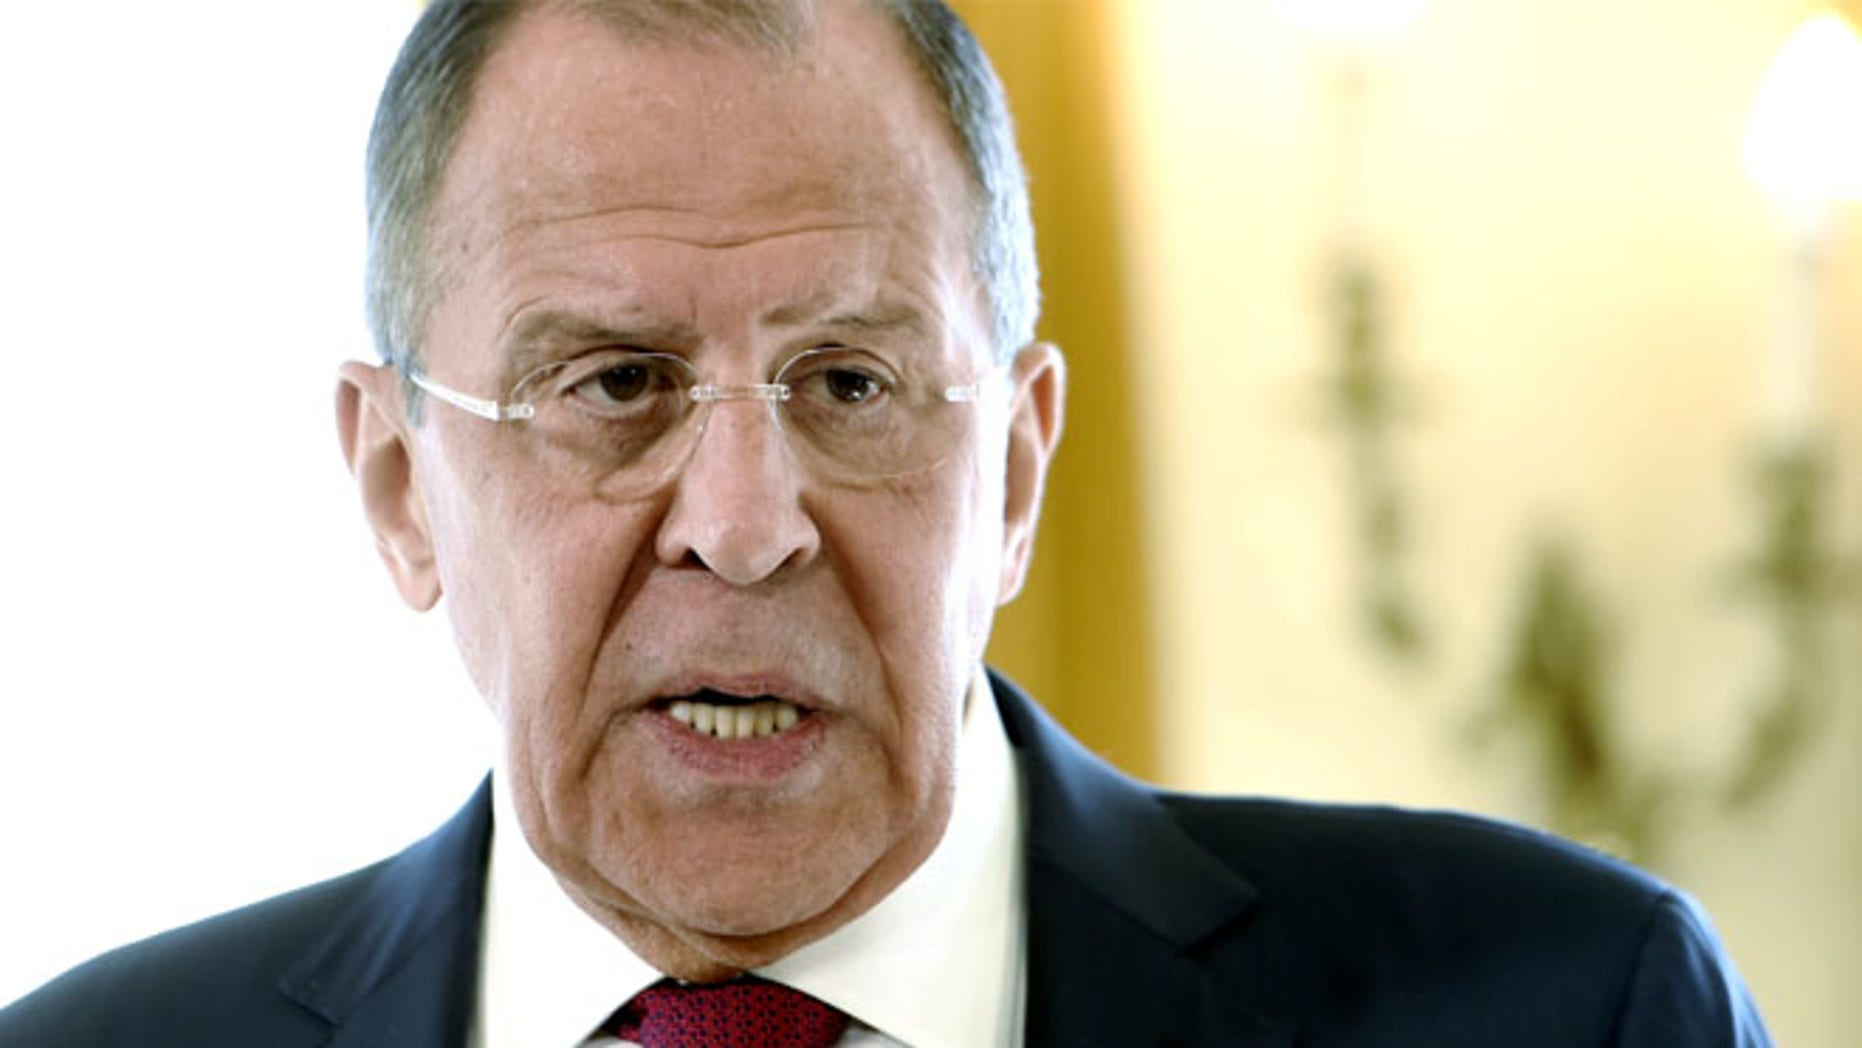 Russian Foreign Minister Sergei Lavrov is seen during the joint press conference with his Finnish counterpart Timo Soini at Hotel Haikko Manor in Porvoo, Finland